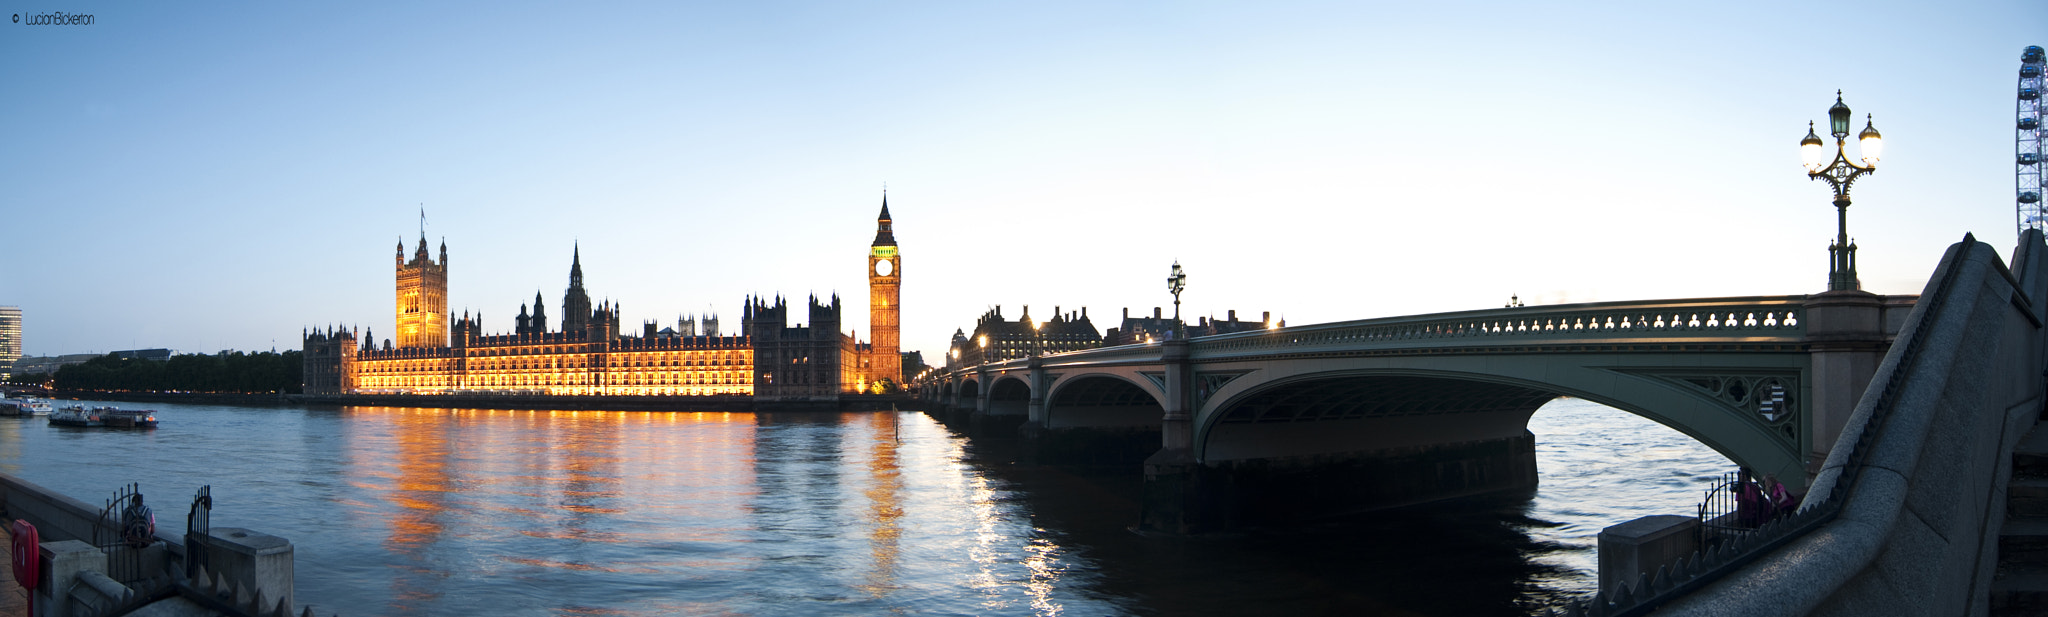 Photograph London by Lucian Bickerton on 500px